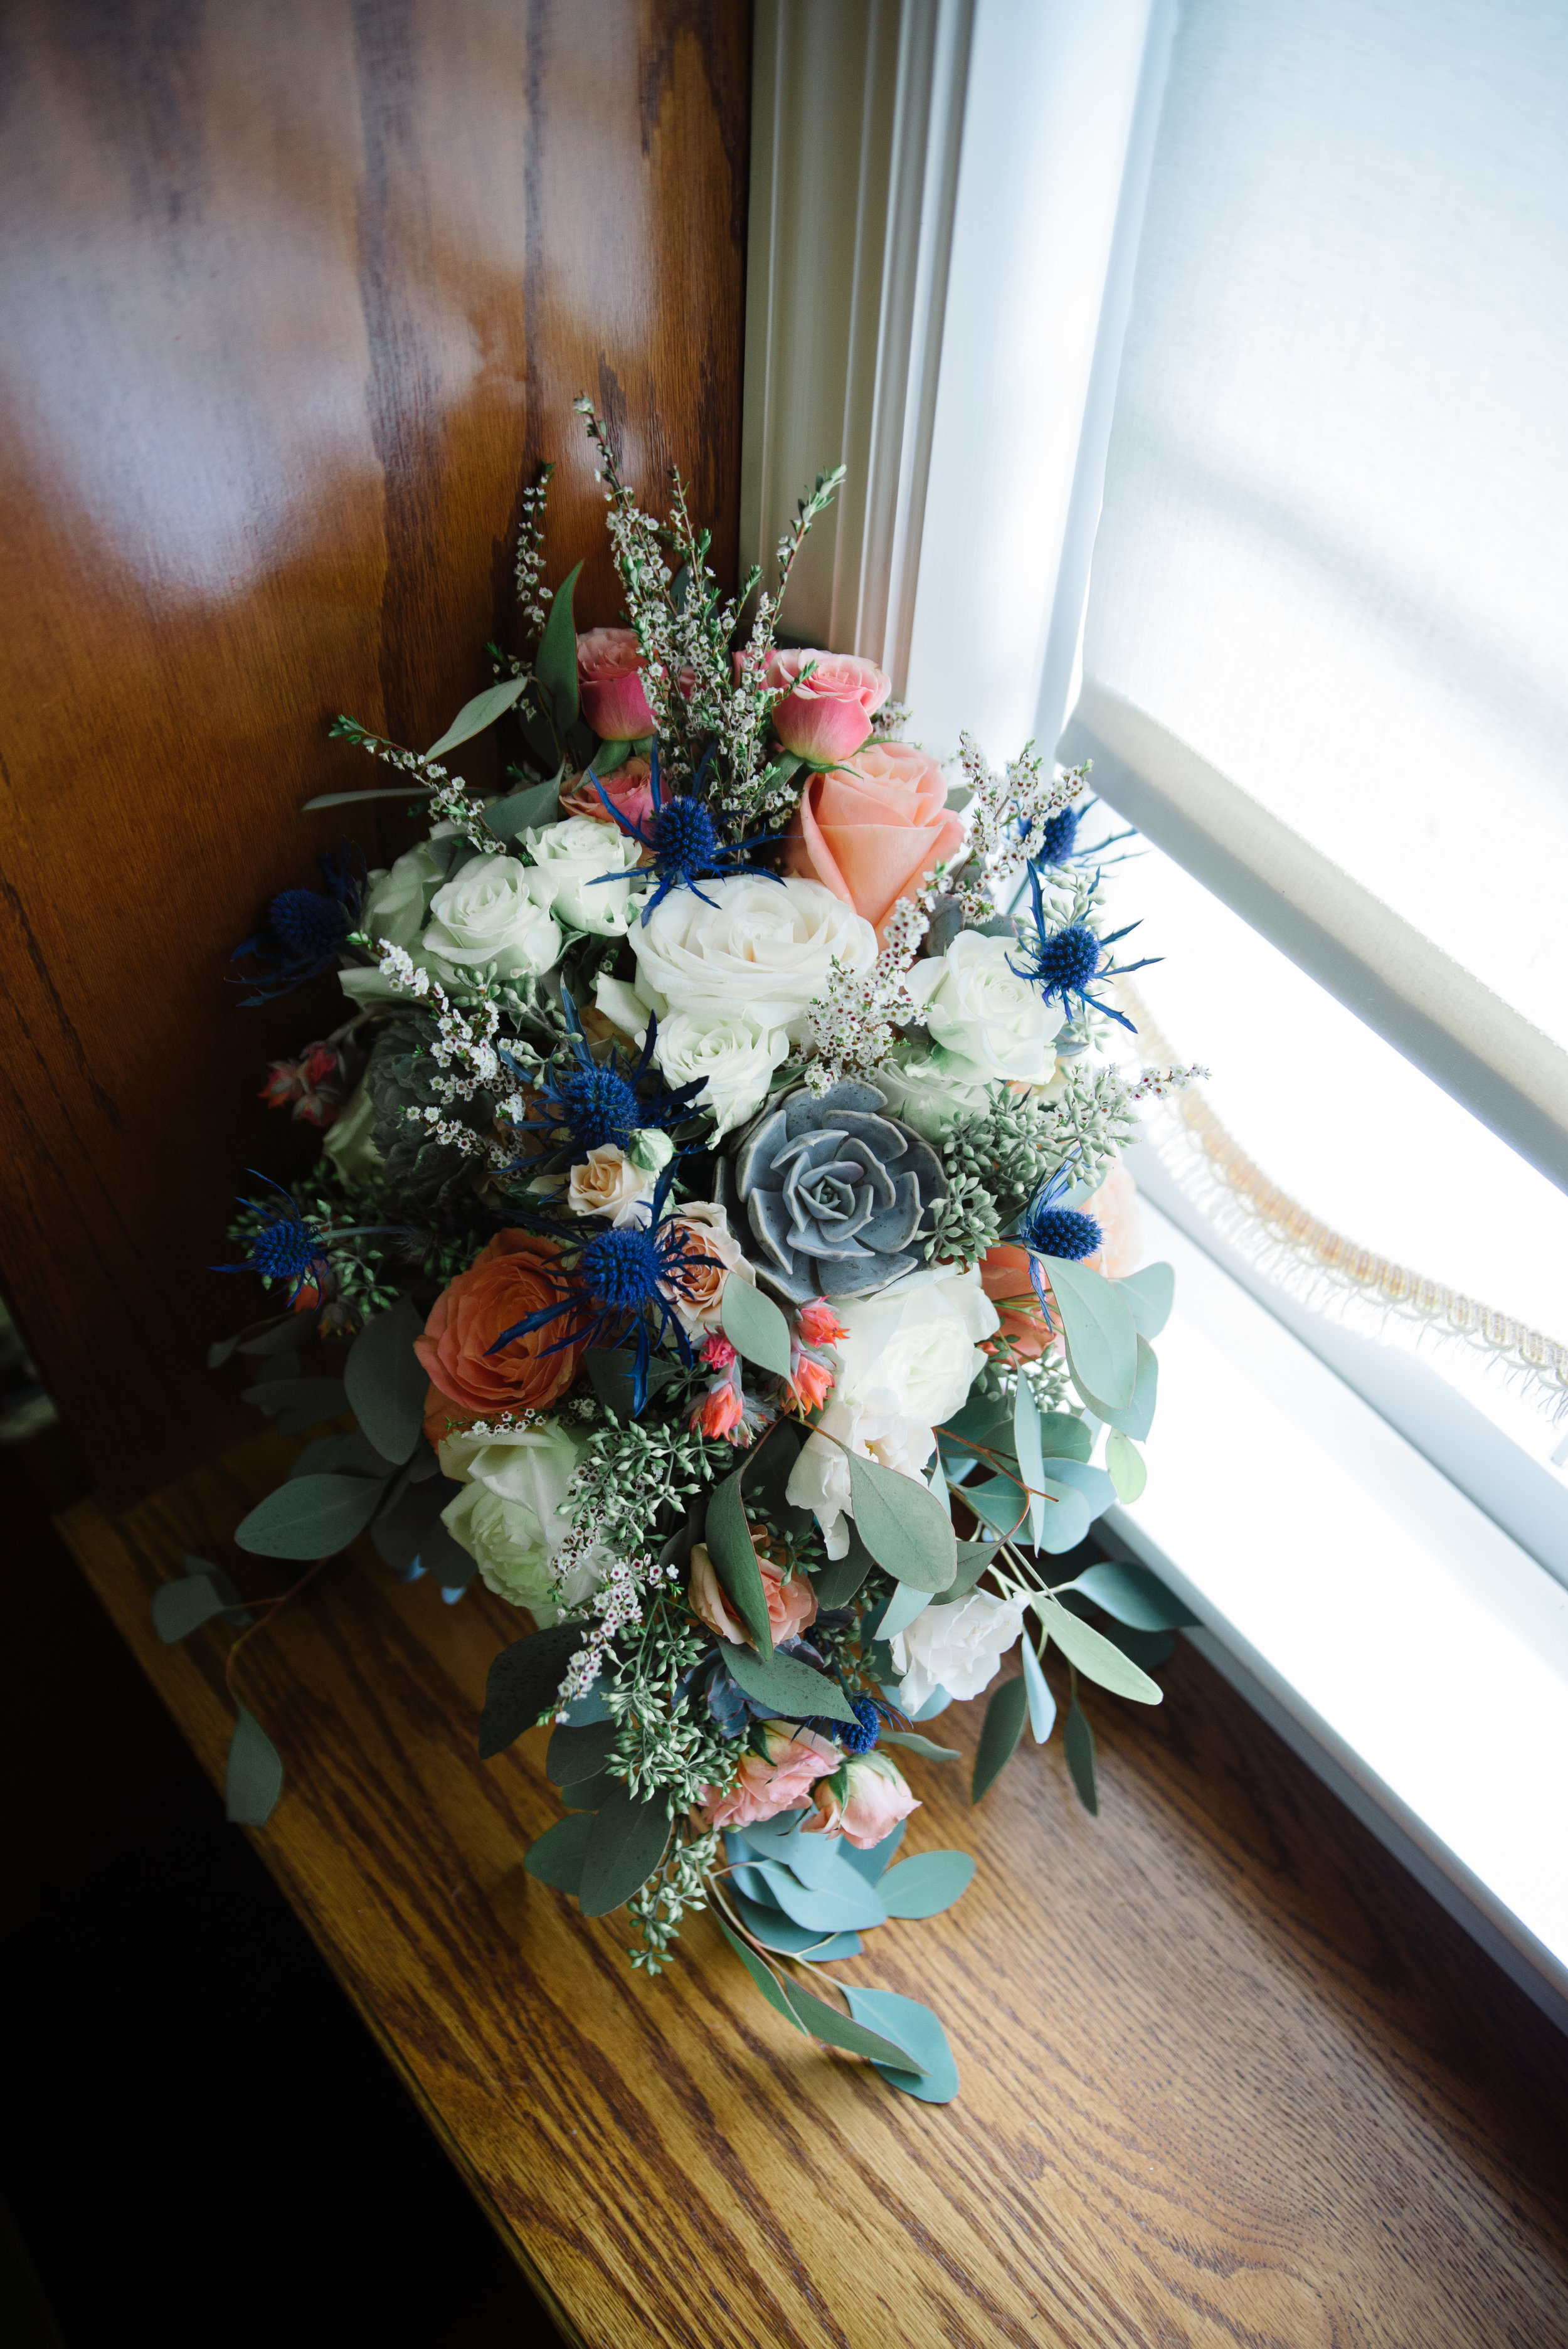 My Bouquet ^ (I love the combination of blue thistles, eucalyptus and succulents!)